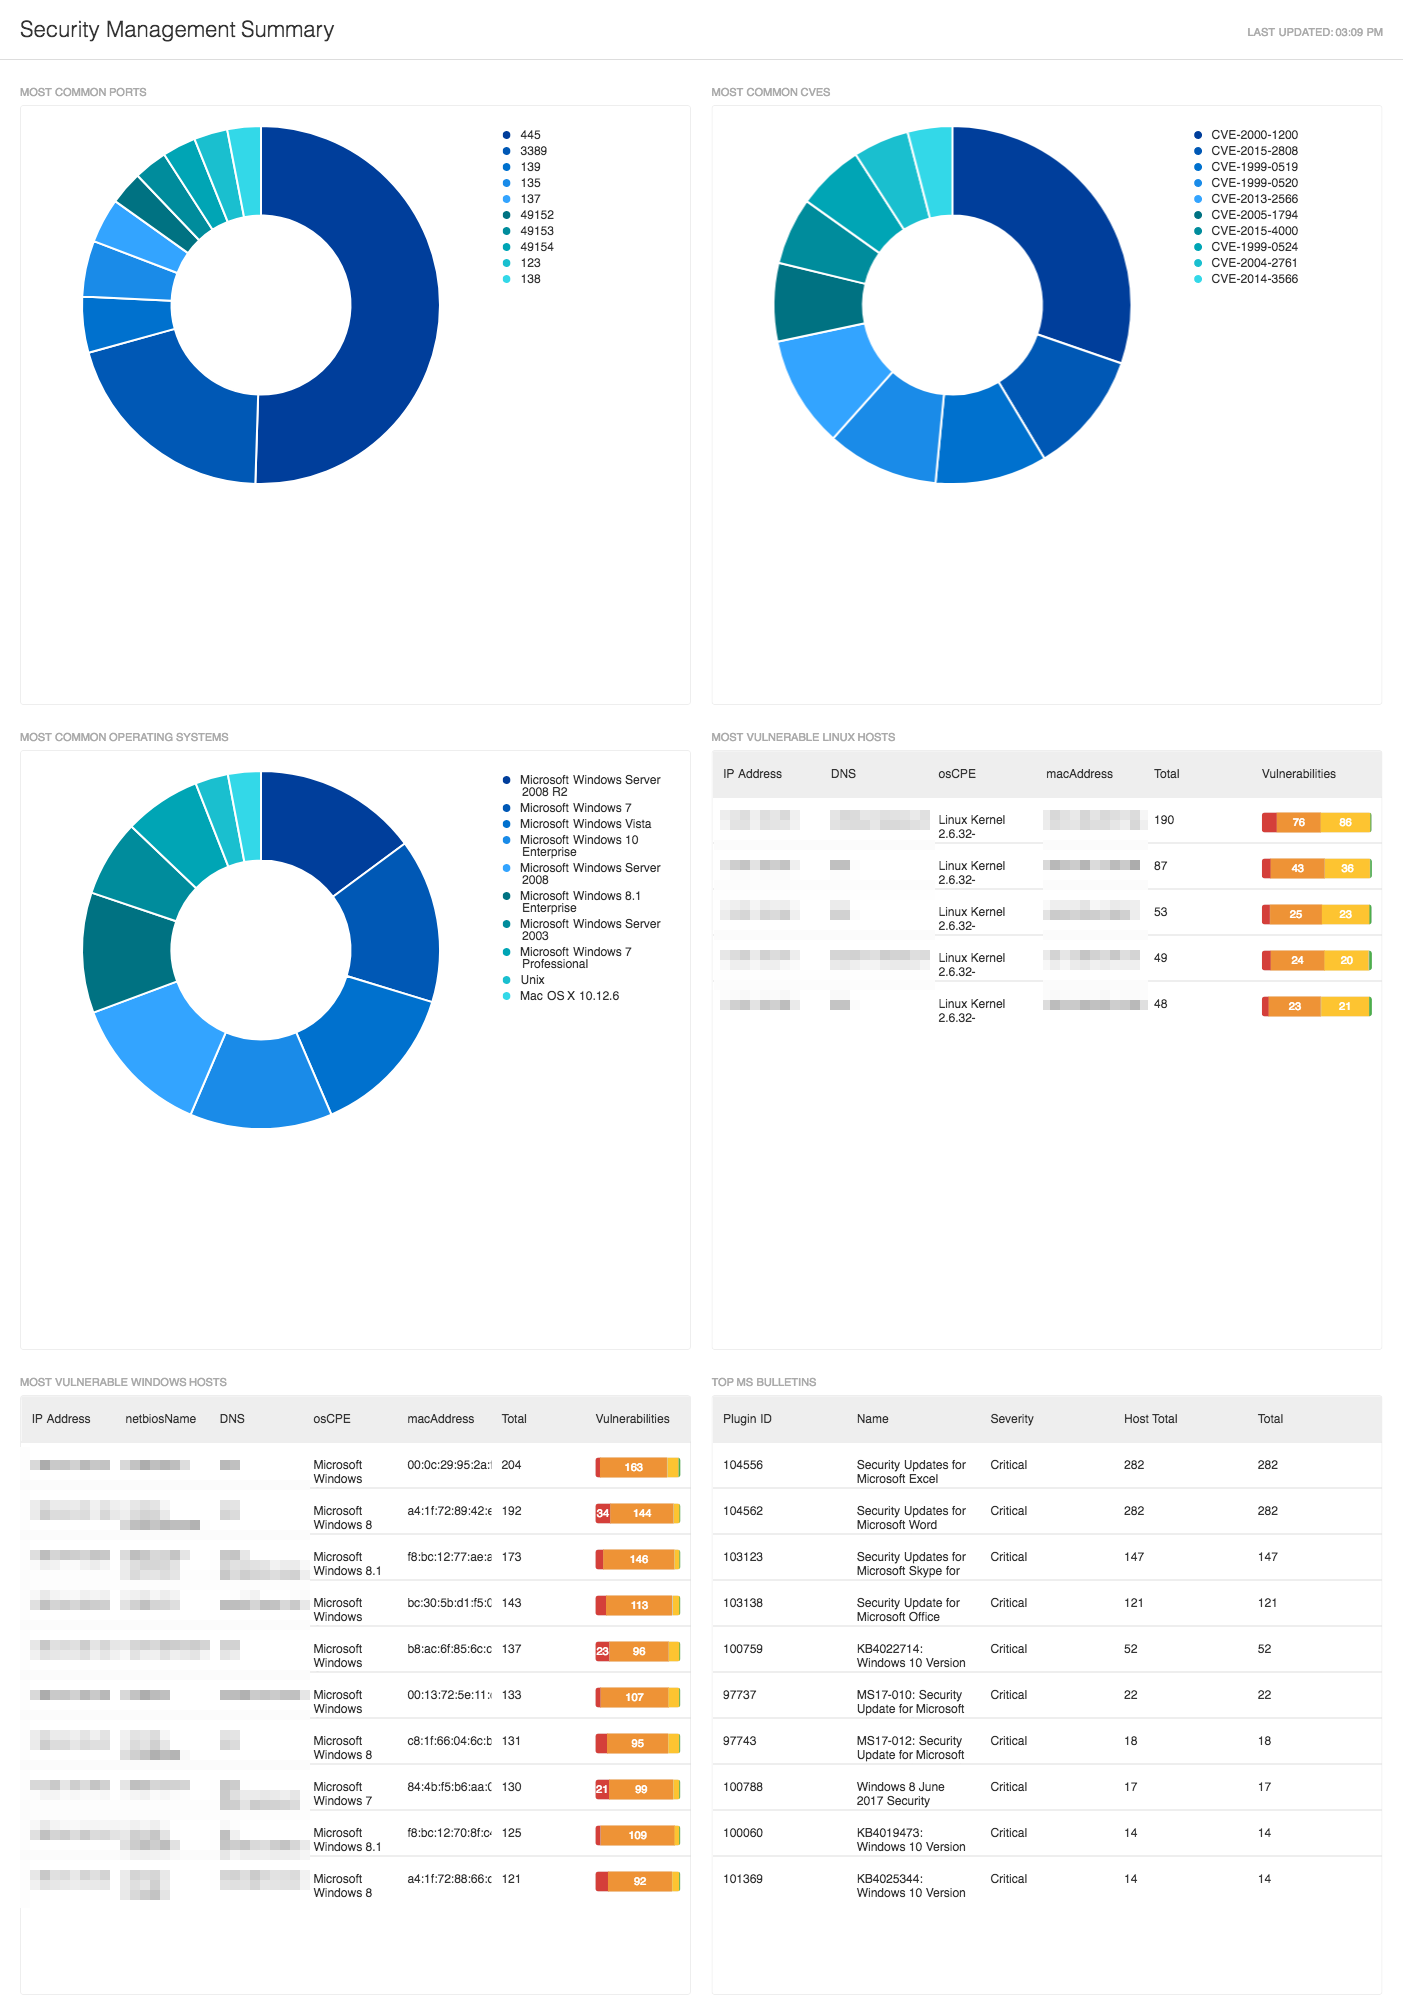 Security Management Summary Dashboard